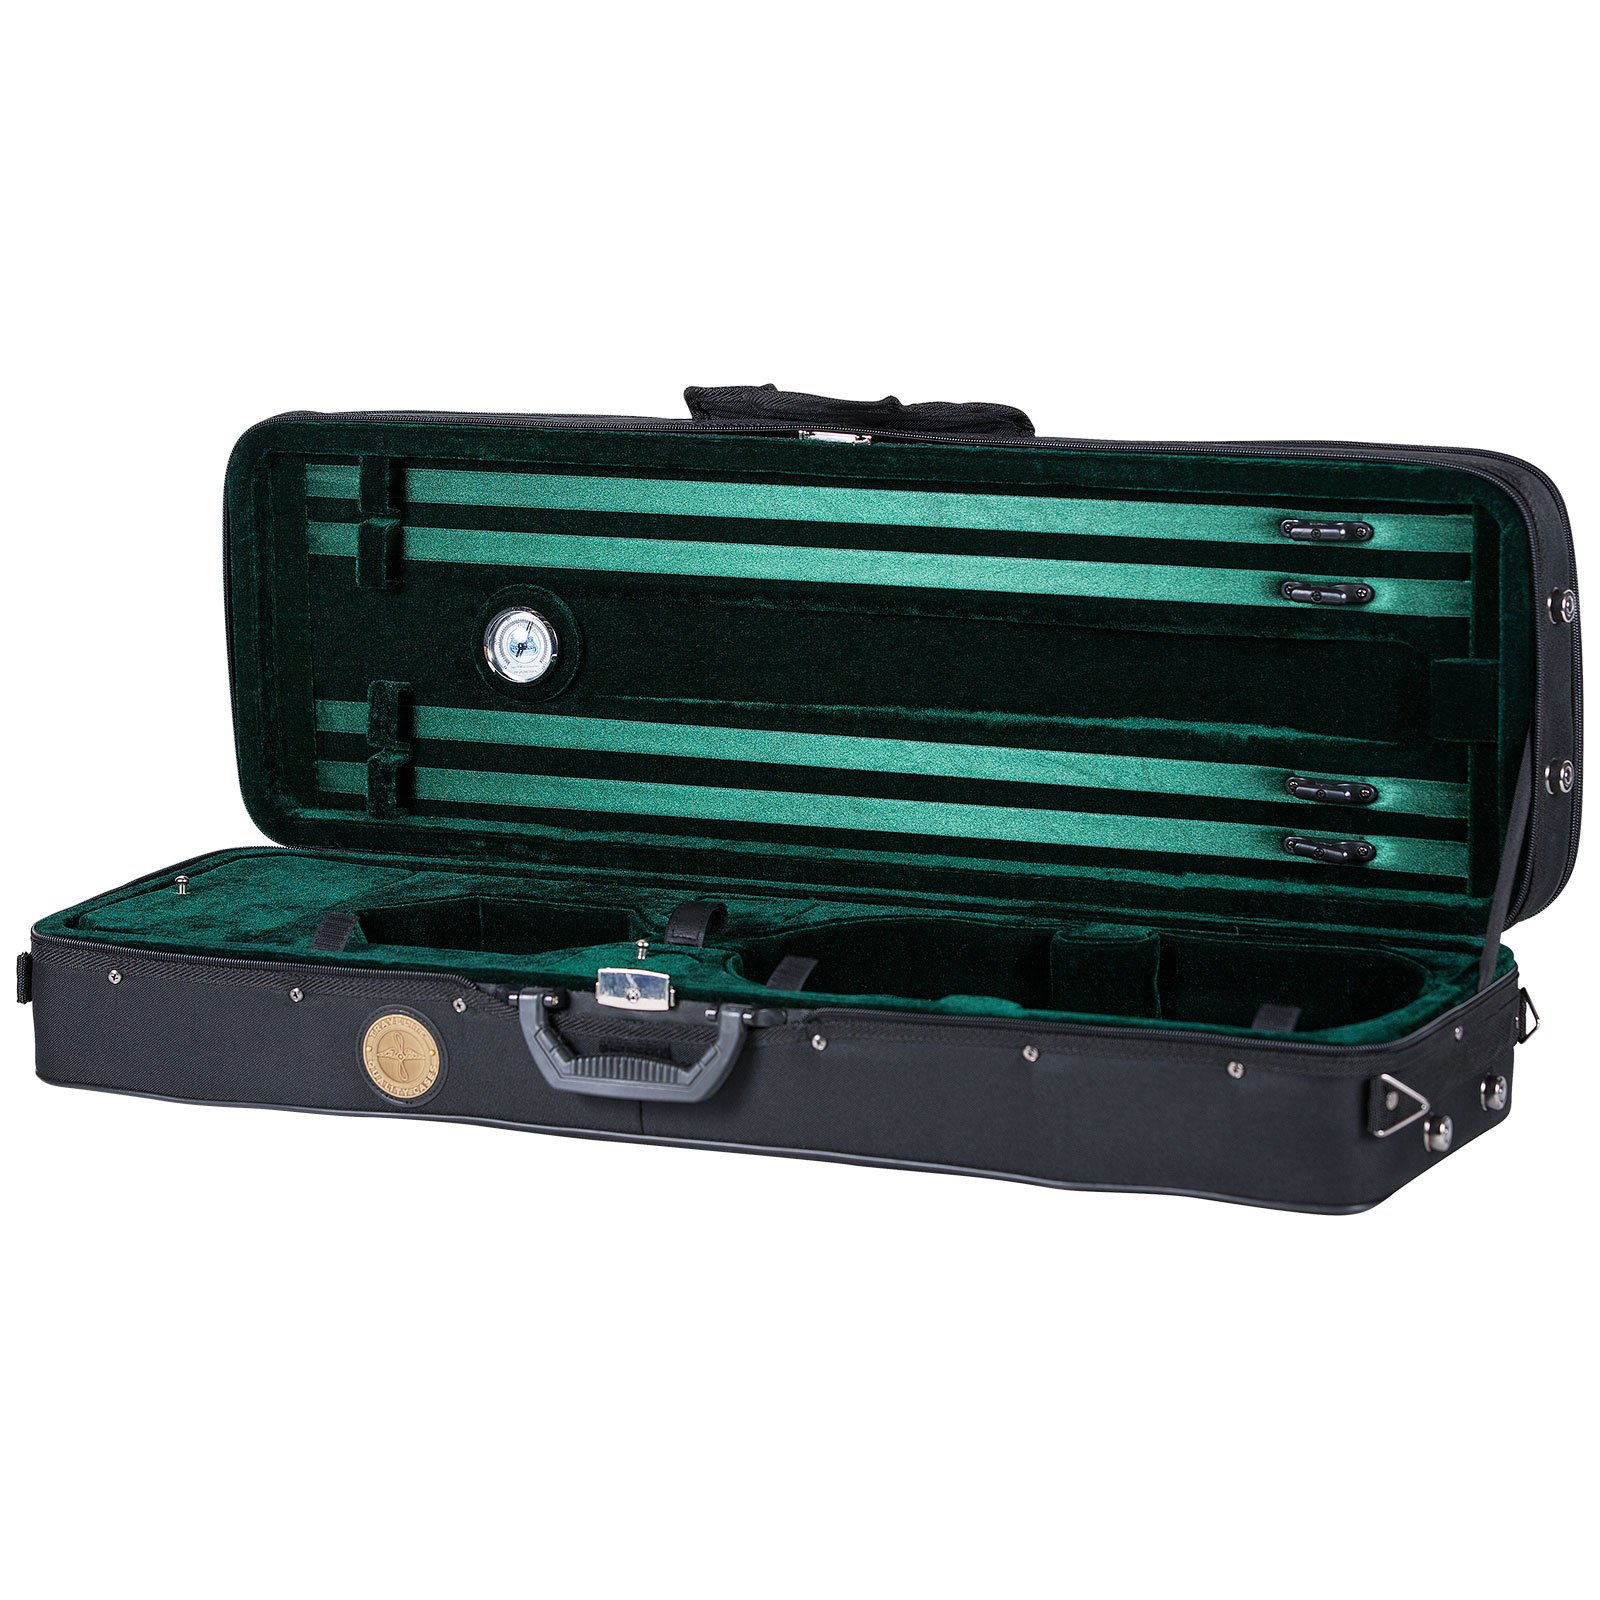 Travelite TL-35 Deluxe Violin Case - Oblong - 1/4 Size